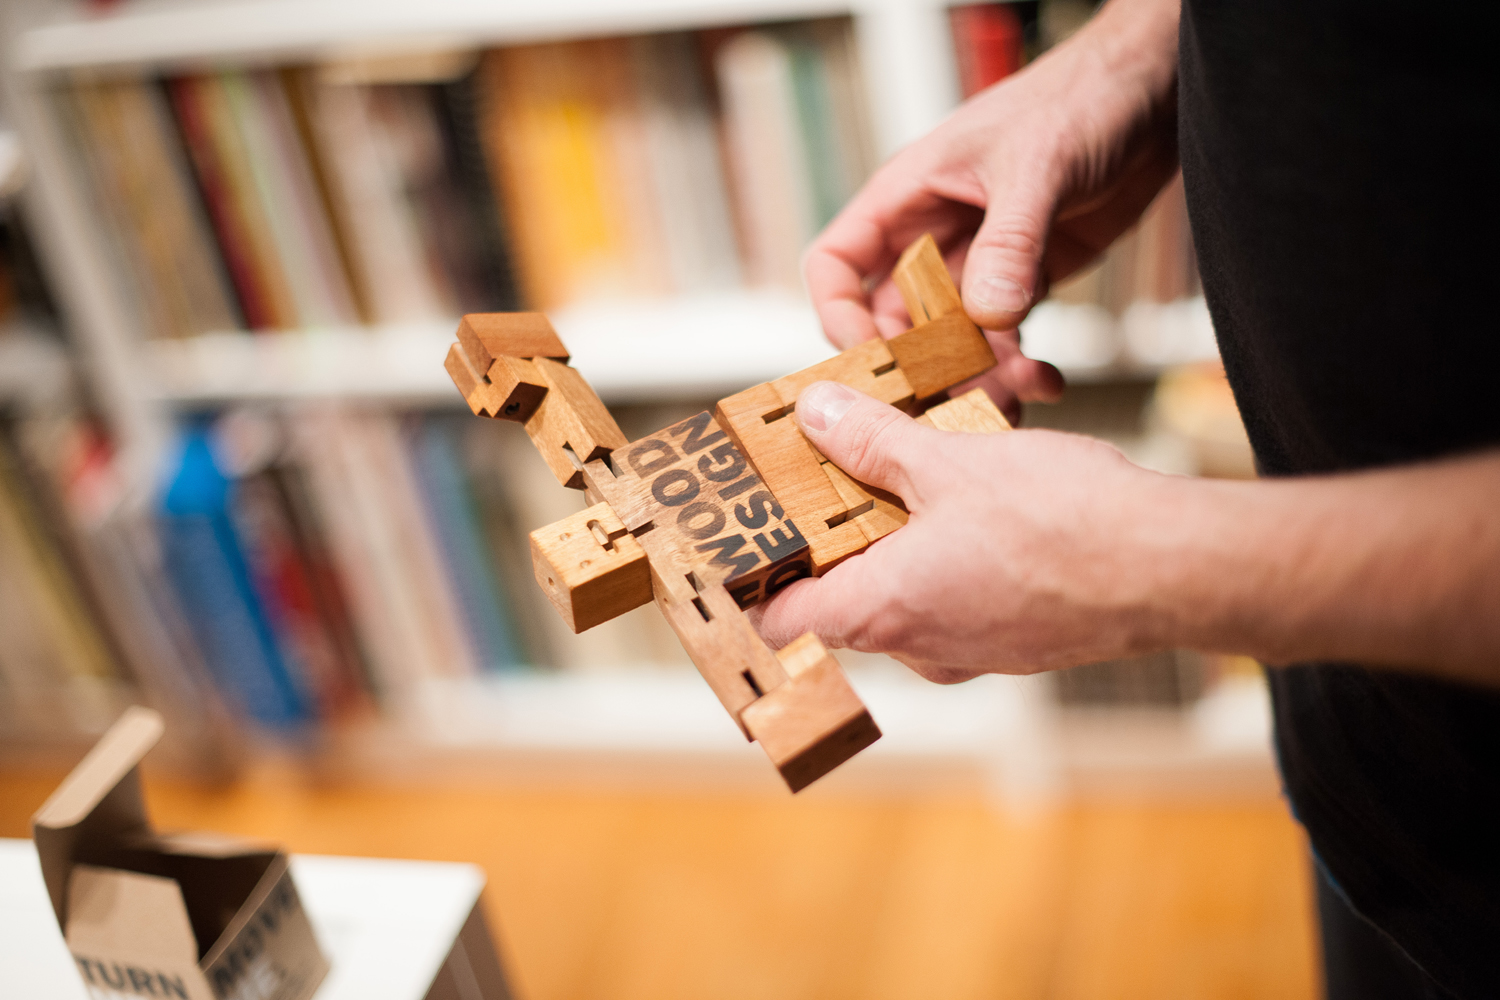 Touchwood Design silkscreened each block by hand to create a unique wooden robot for their clients.